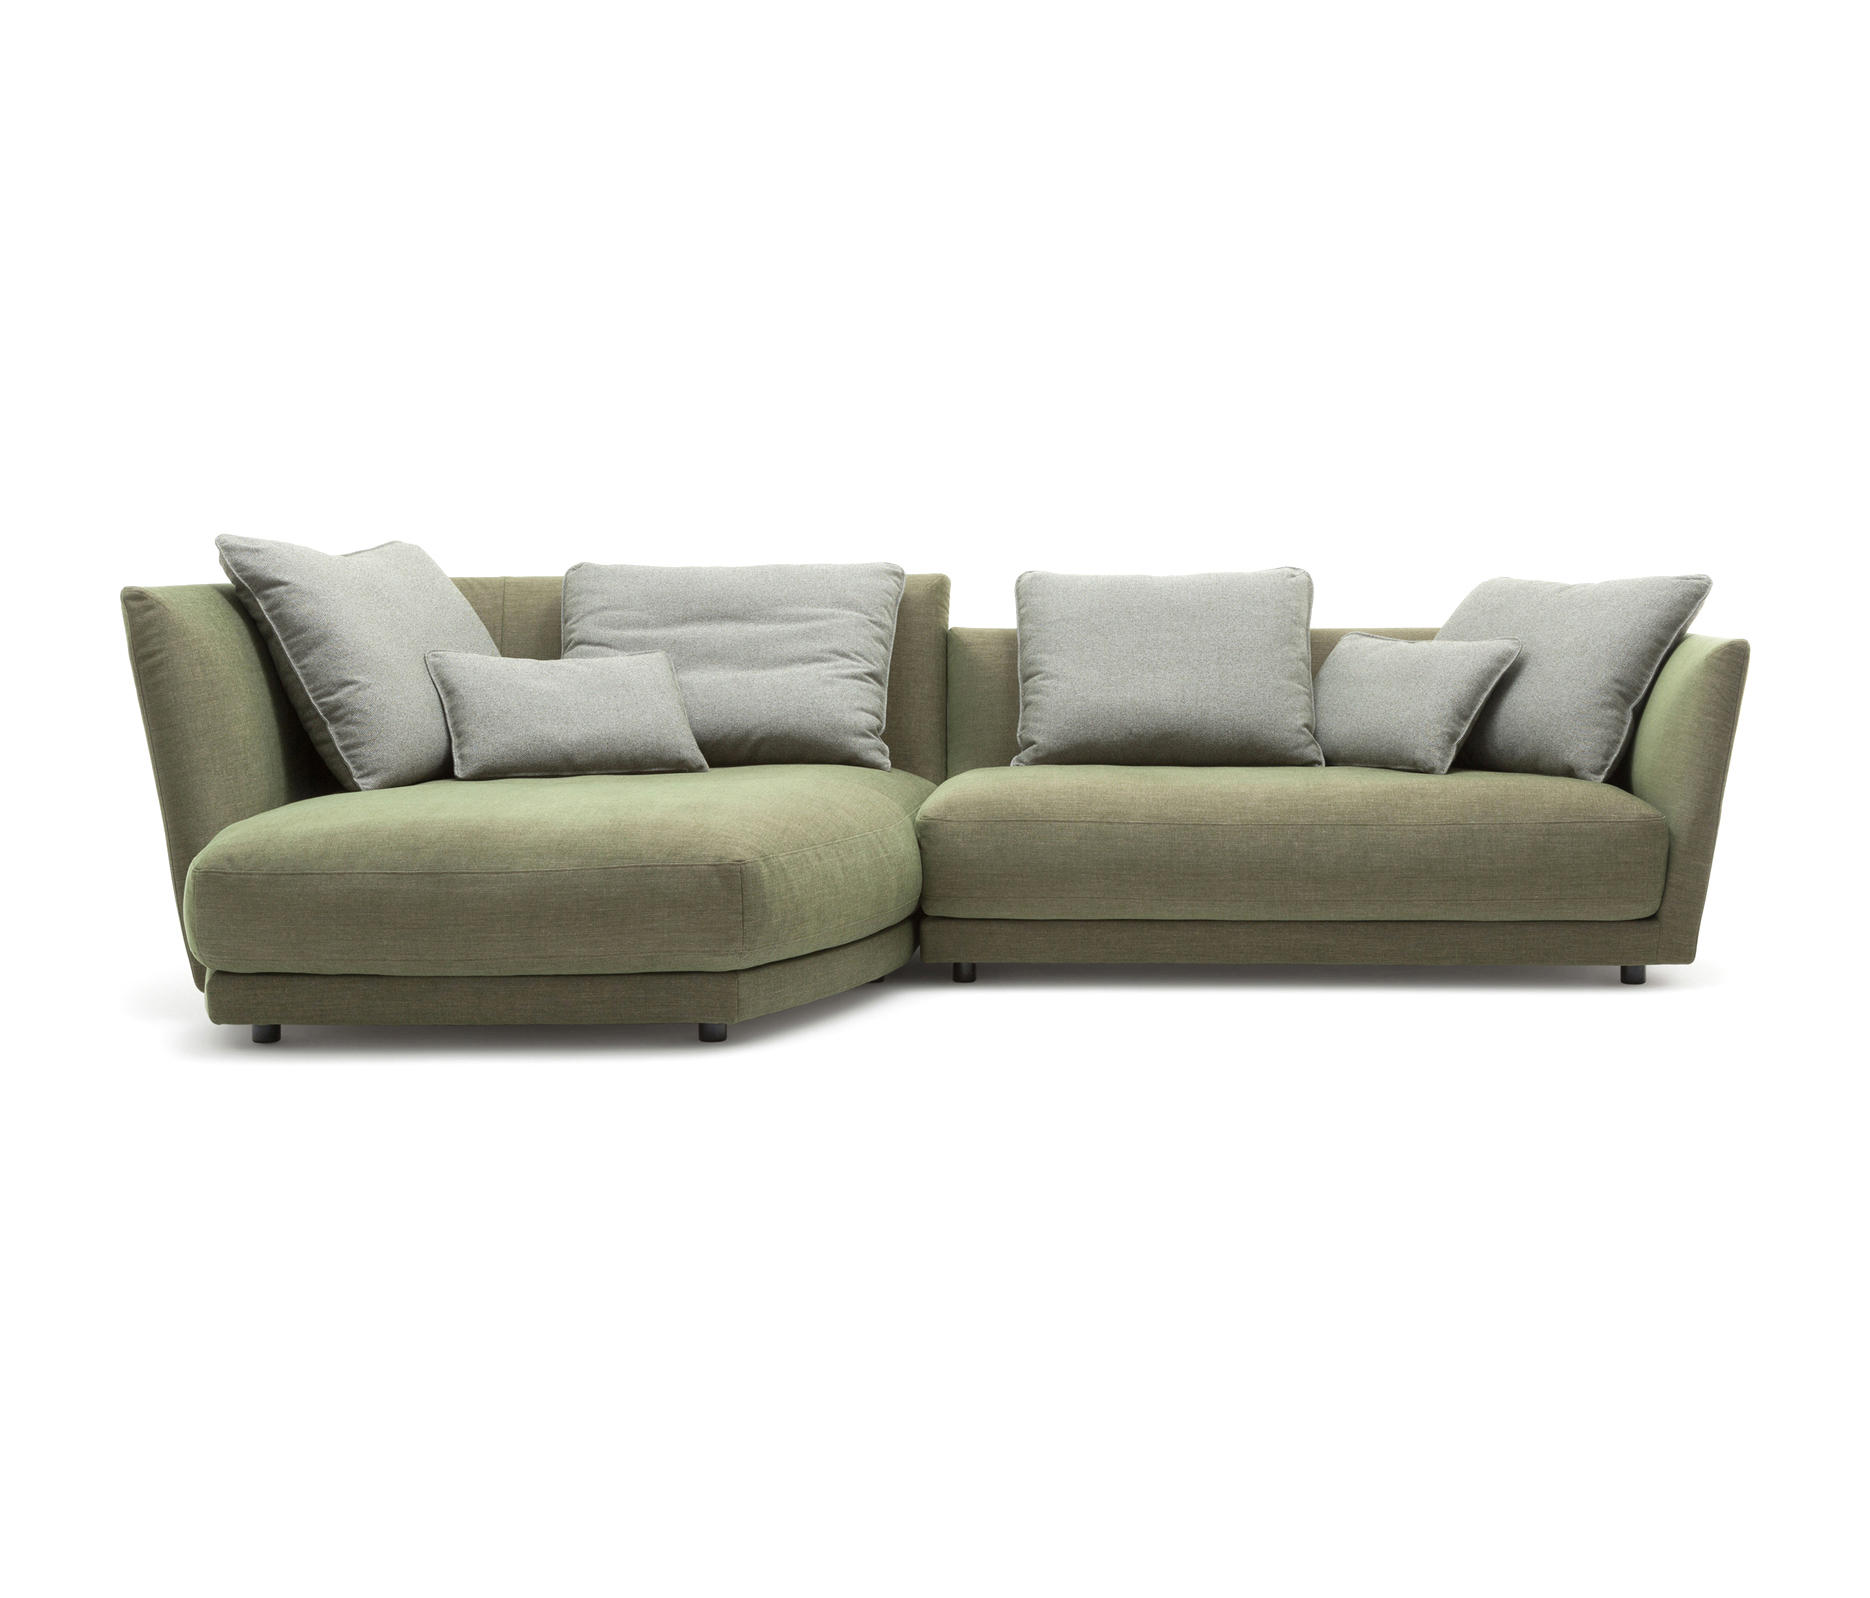 Rolf benz tondo modular sofa systems from rolf benz for Rolf benz ledergarnitur